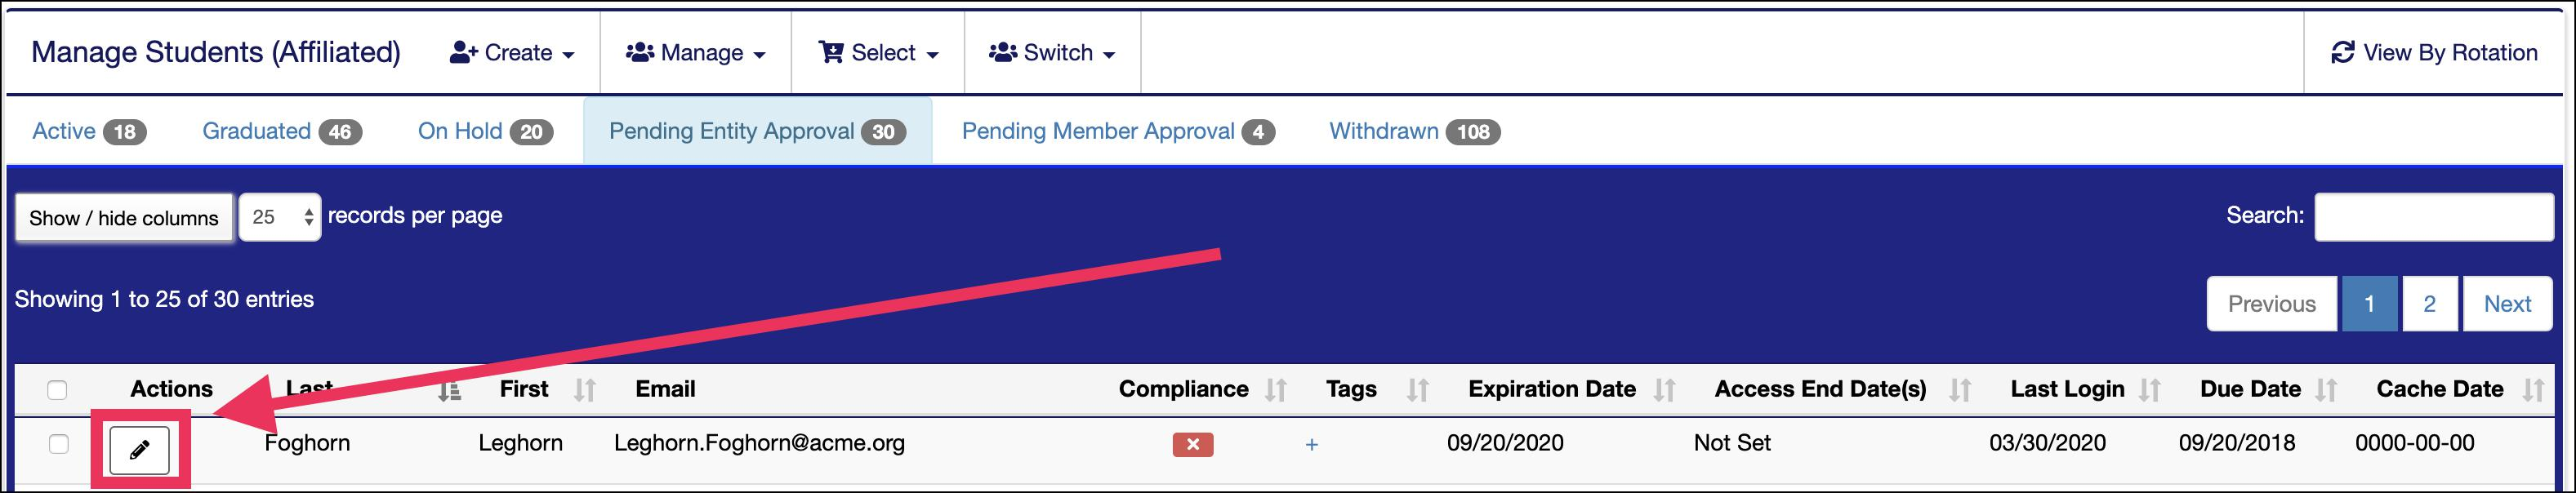 Manage Pending Approval screen pointing to Edit icon